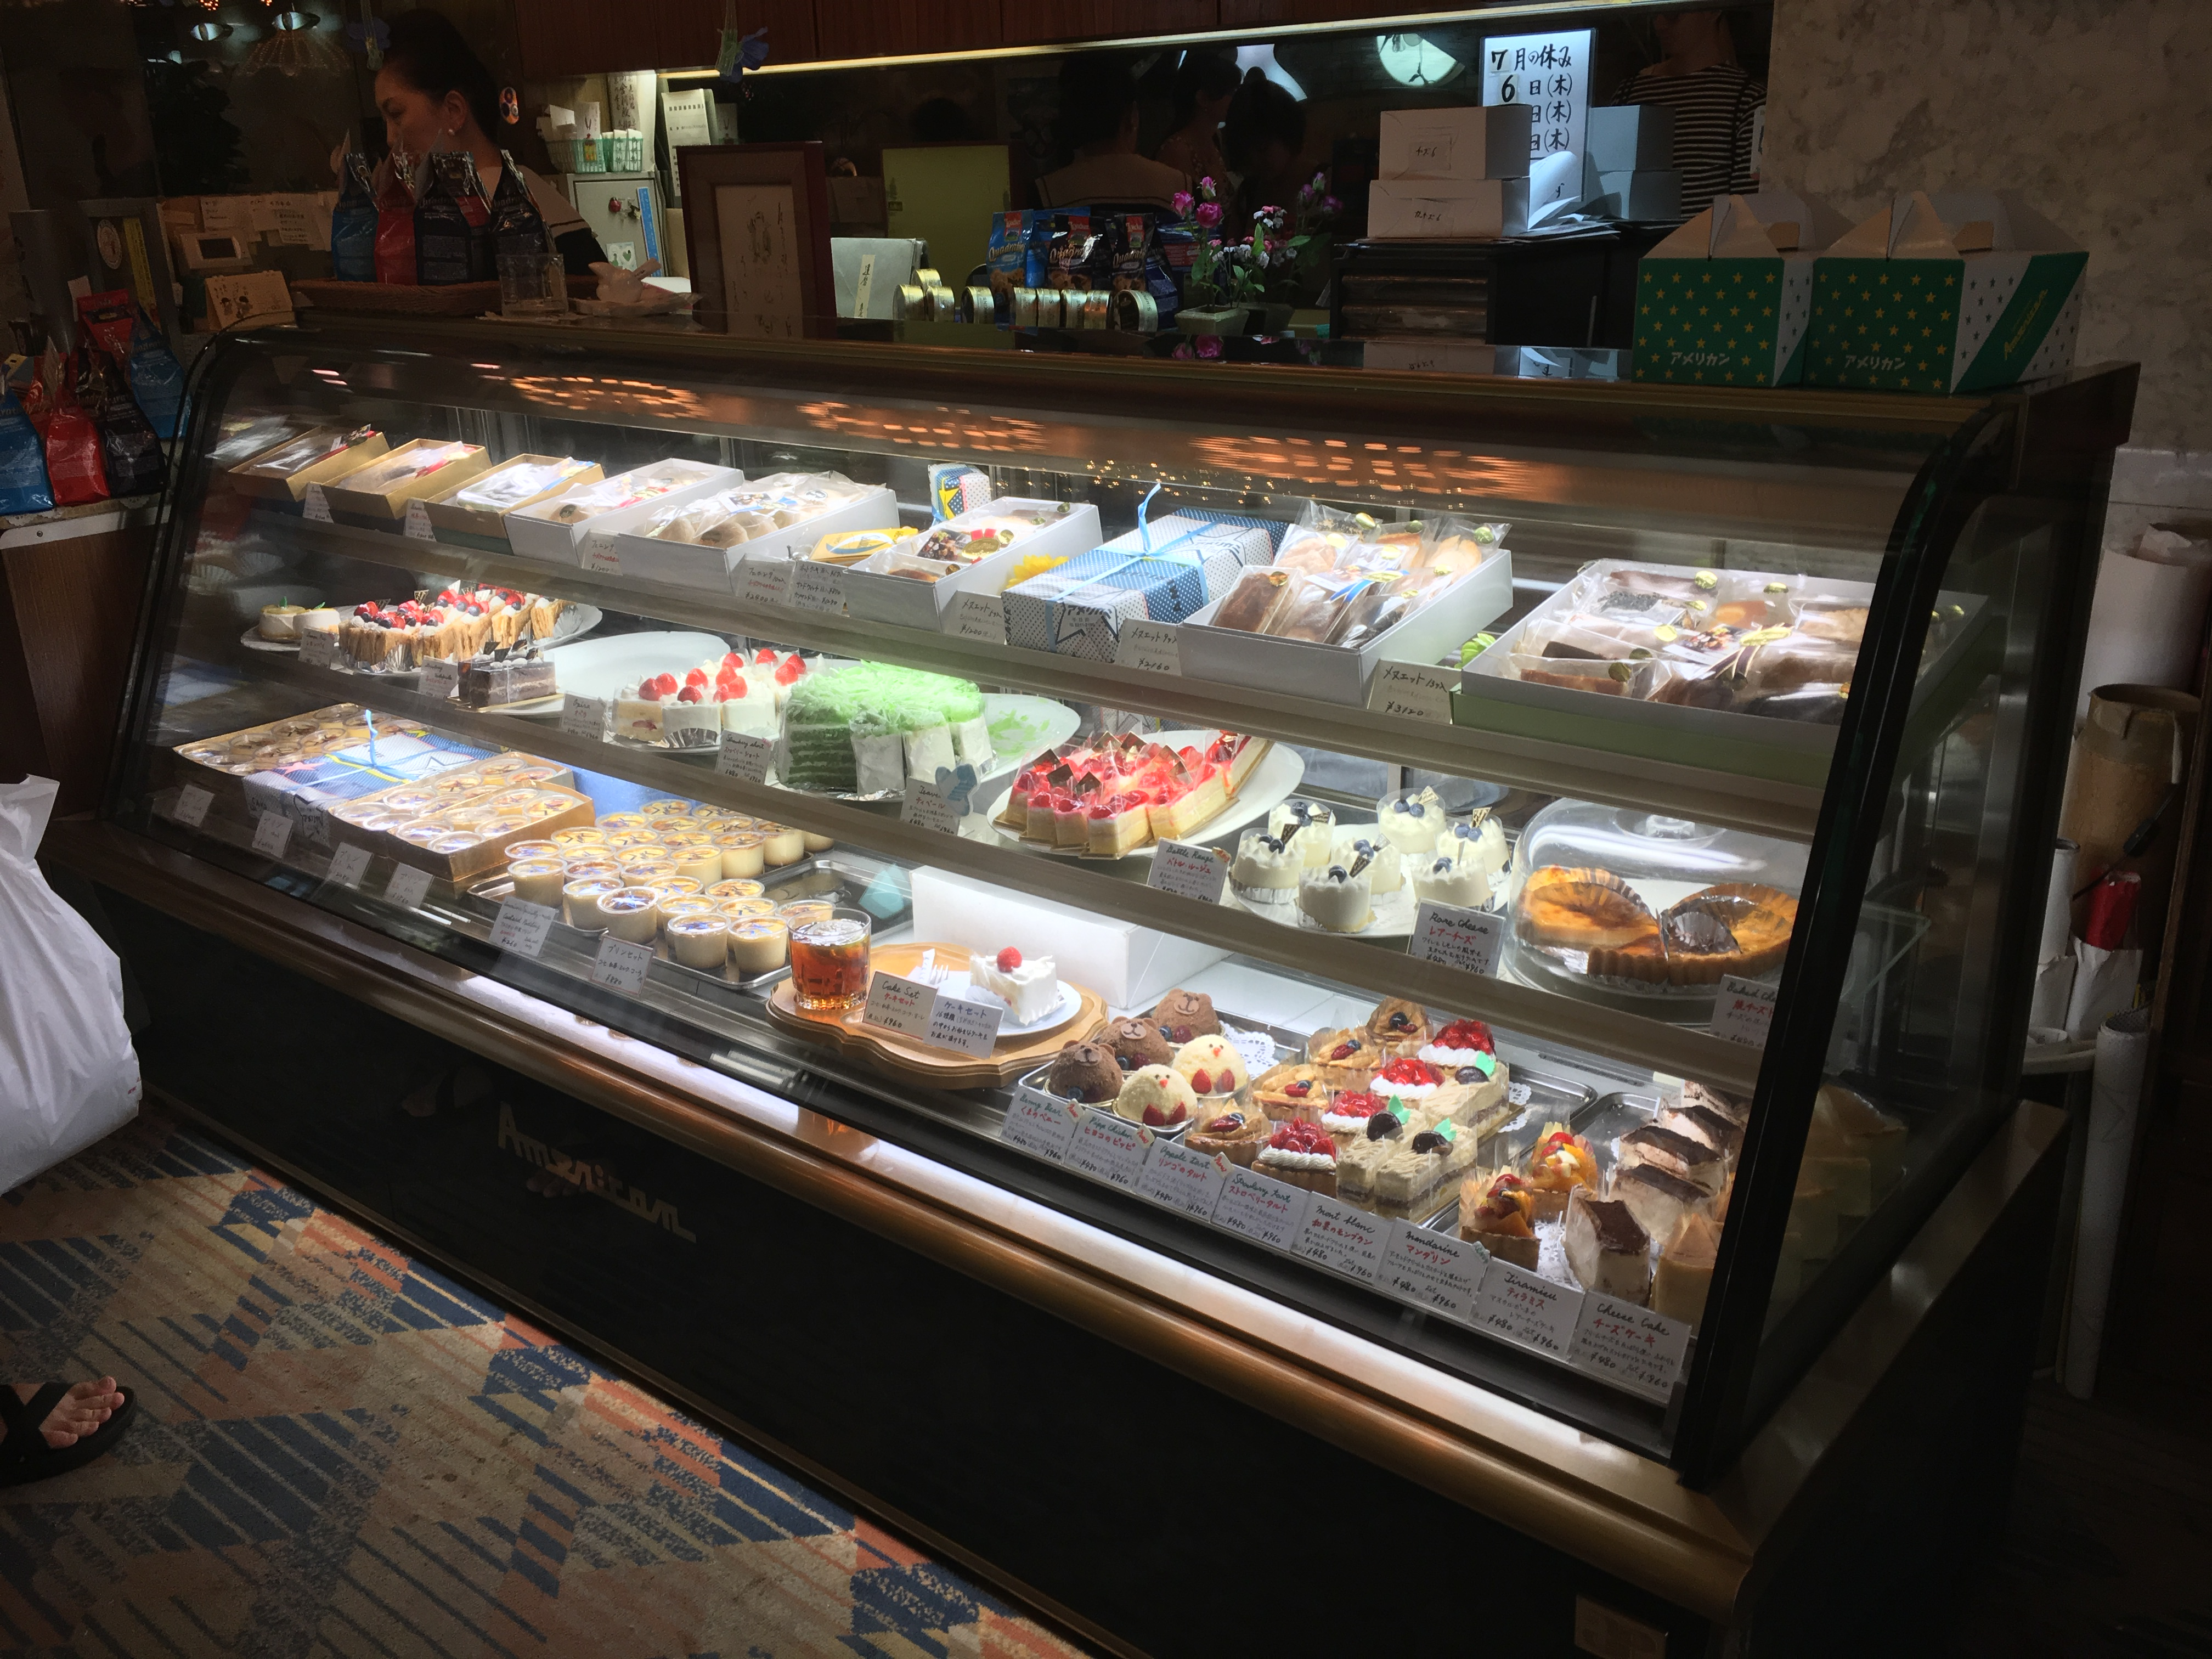 Kissa American dessert case featuring many different cakes and sweets